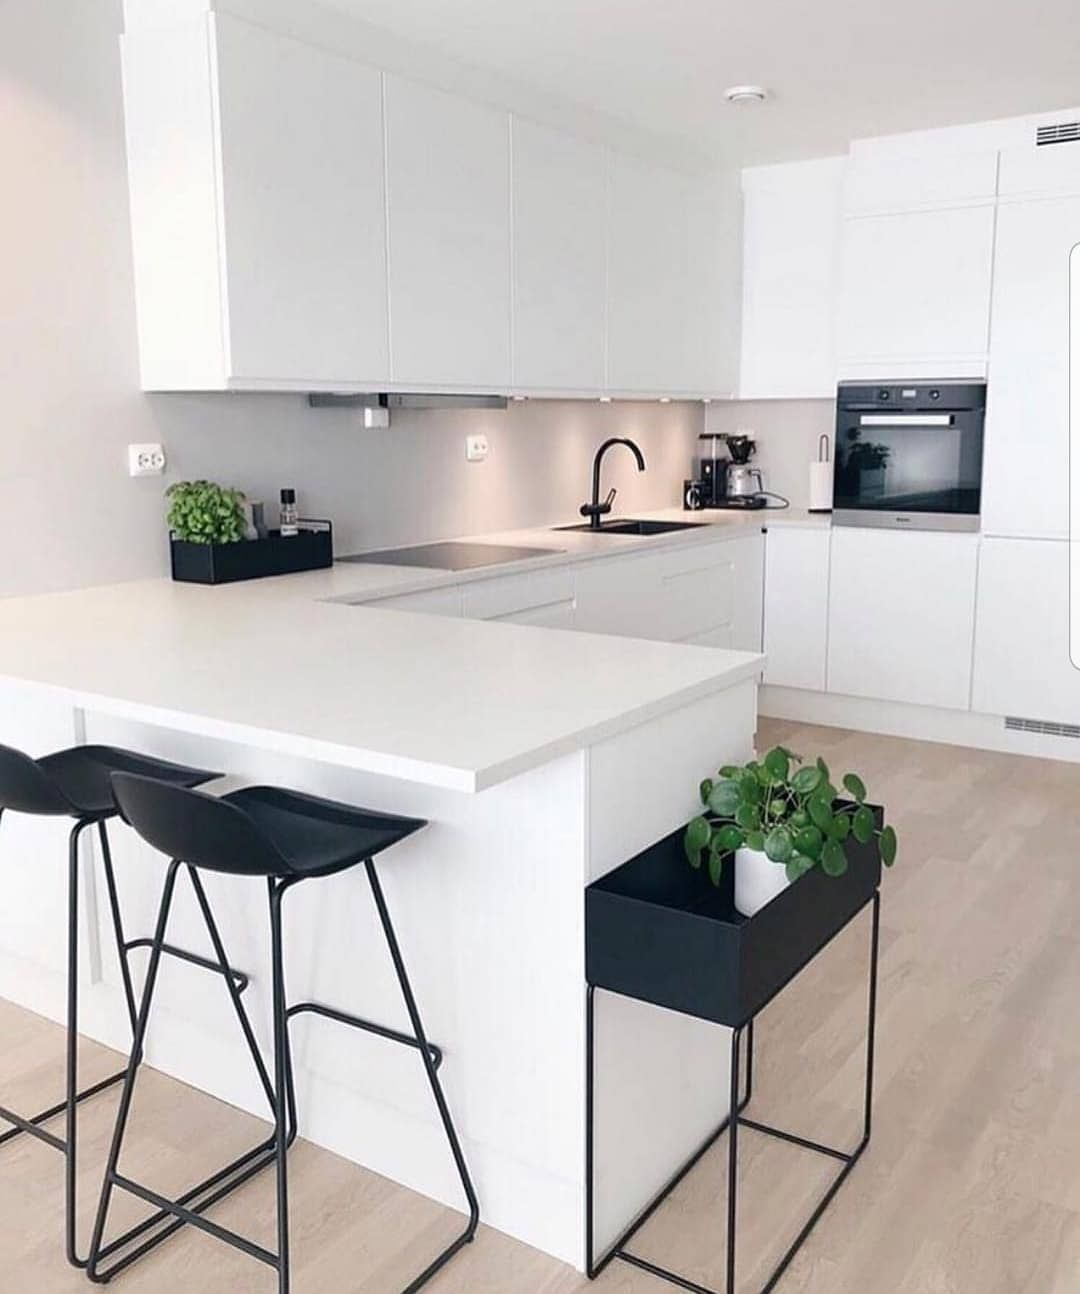 [New] The 10 Best Home Decor (with Pictures) - Credit @homehav11 #kitchendesign #kitchen #inspire_me_home_decor #interiorstyling #interiordecor #interiordesigner #wohnungküche